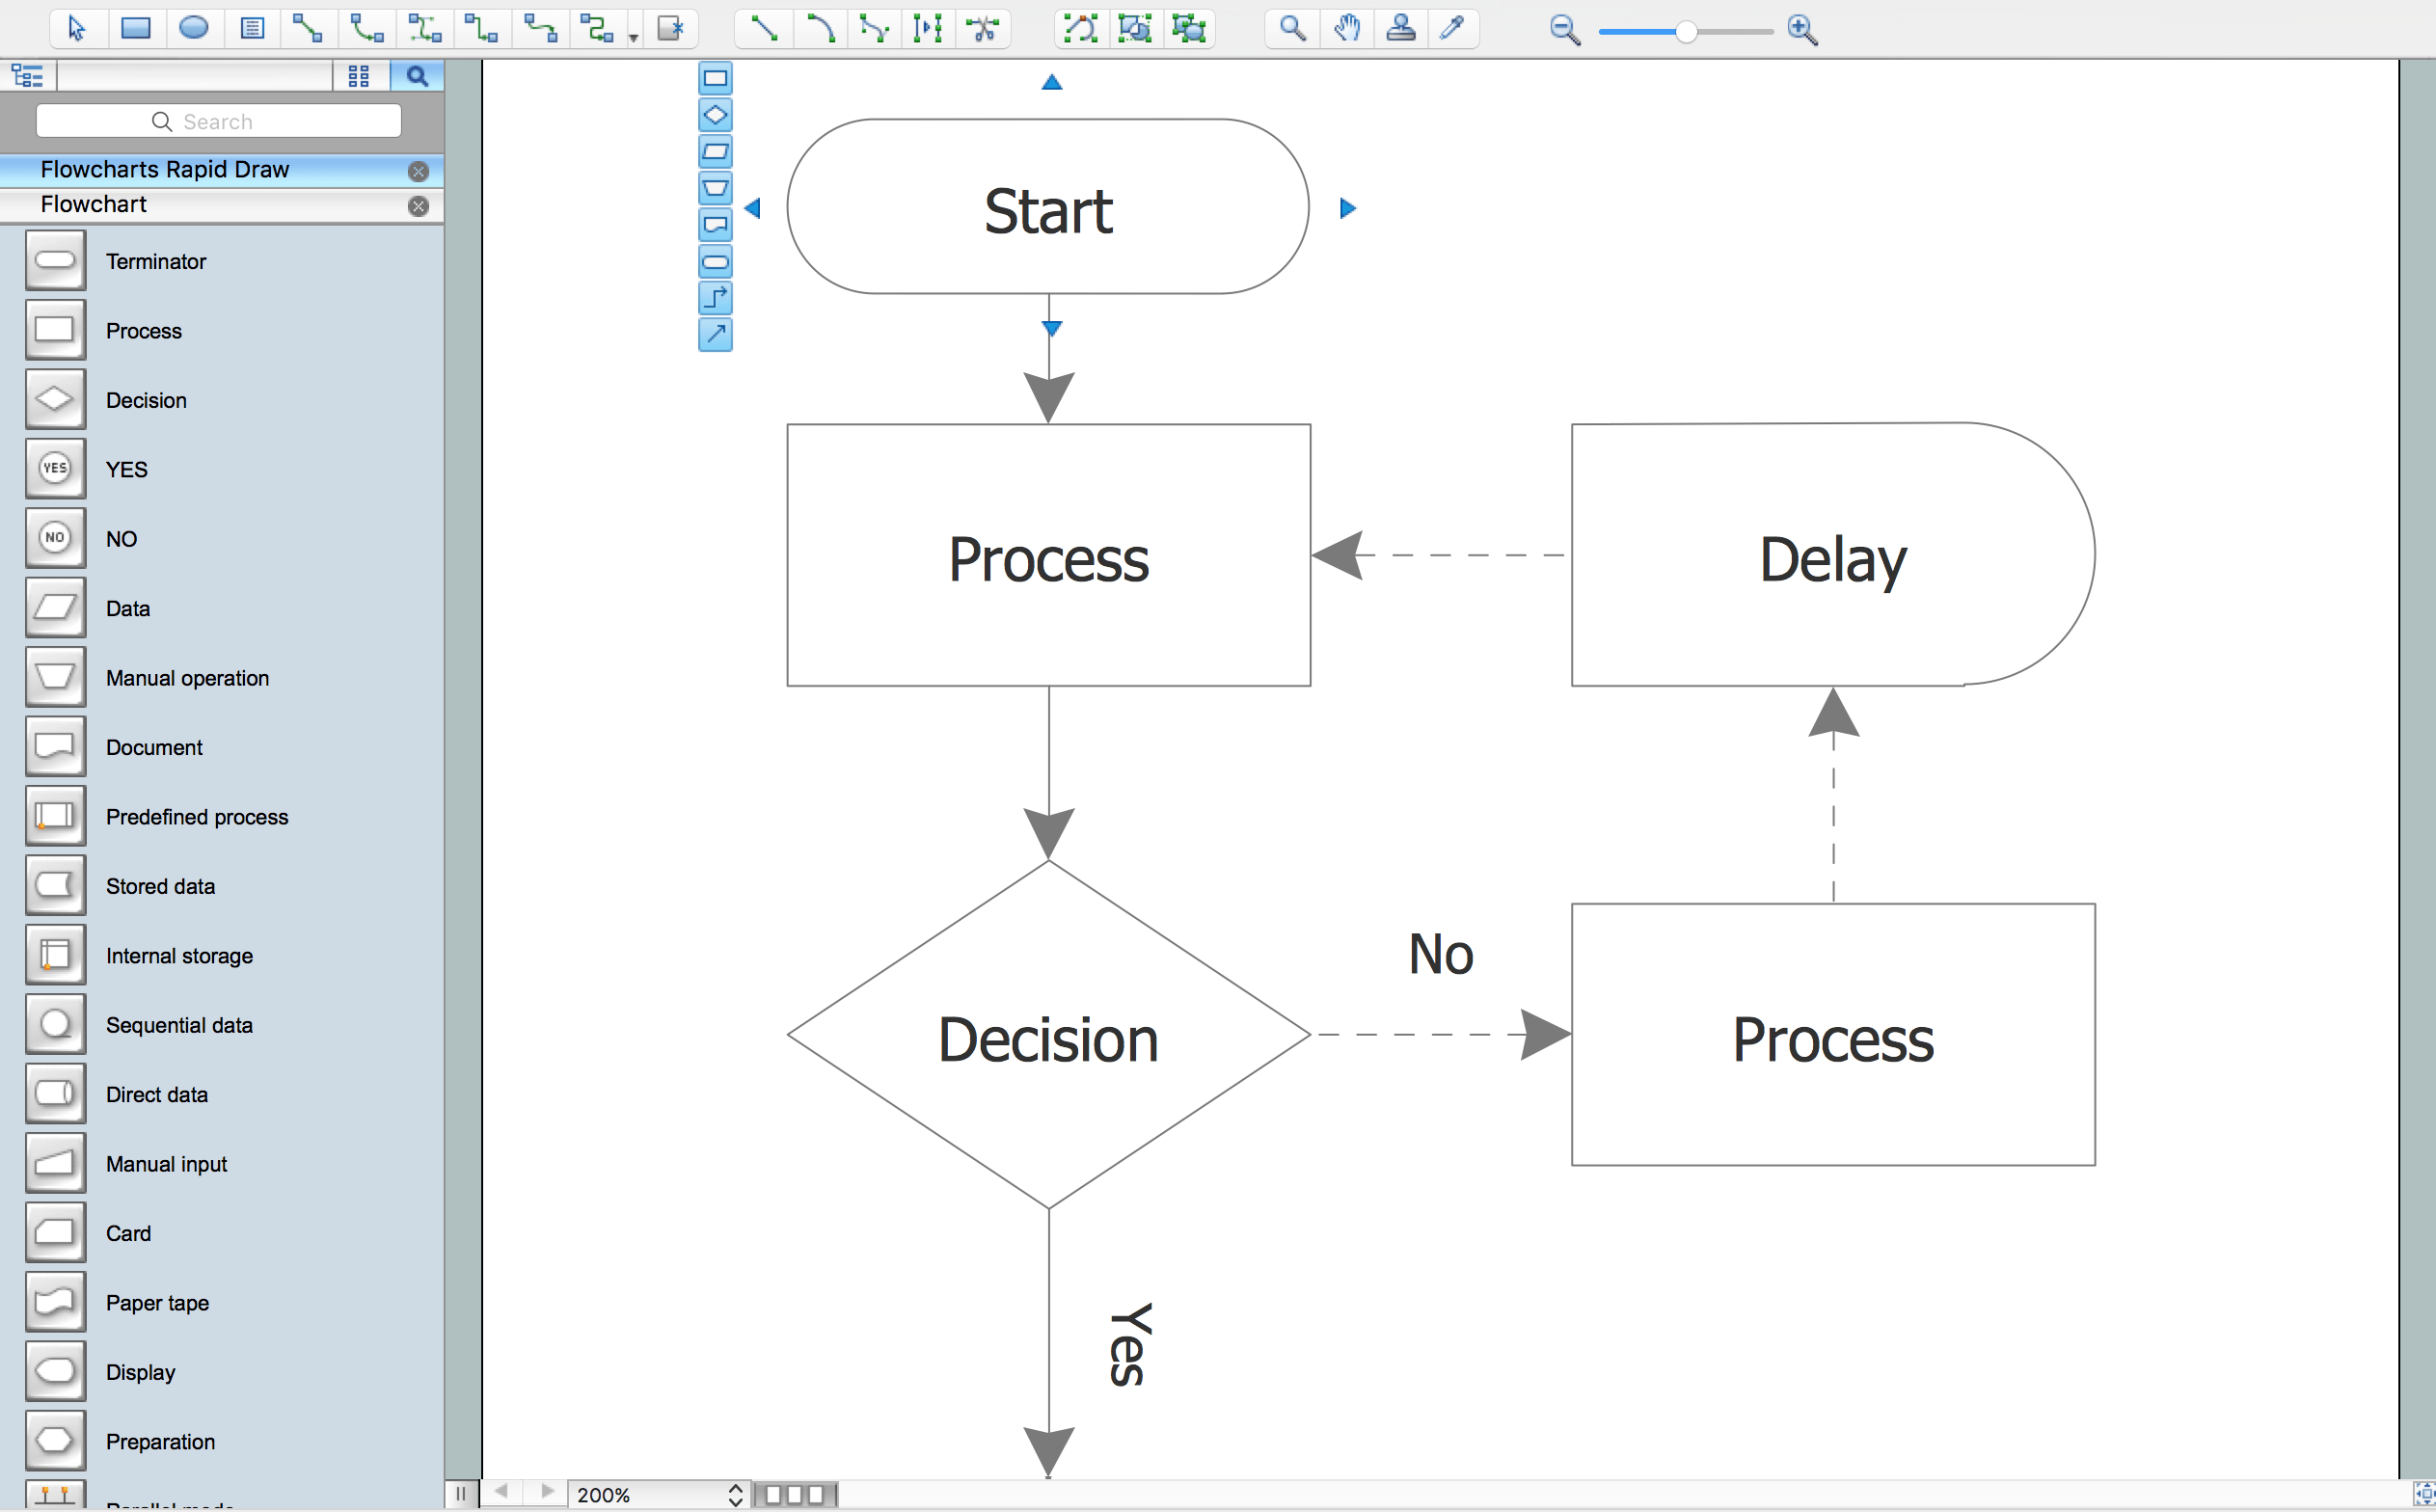 Visio flow chart gallery free any chart examples wonderful 88 phenomenal visio flowchart image inspirations gallery process flow chart visio image collections free any nvjuhfo Choice Image